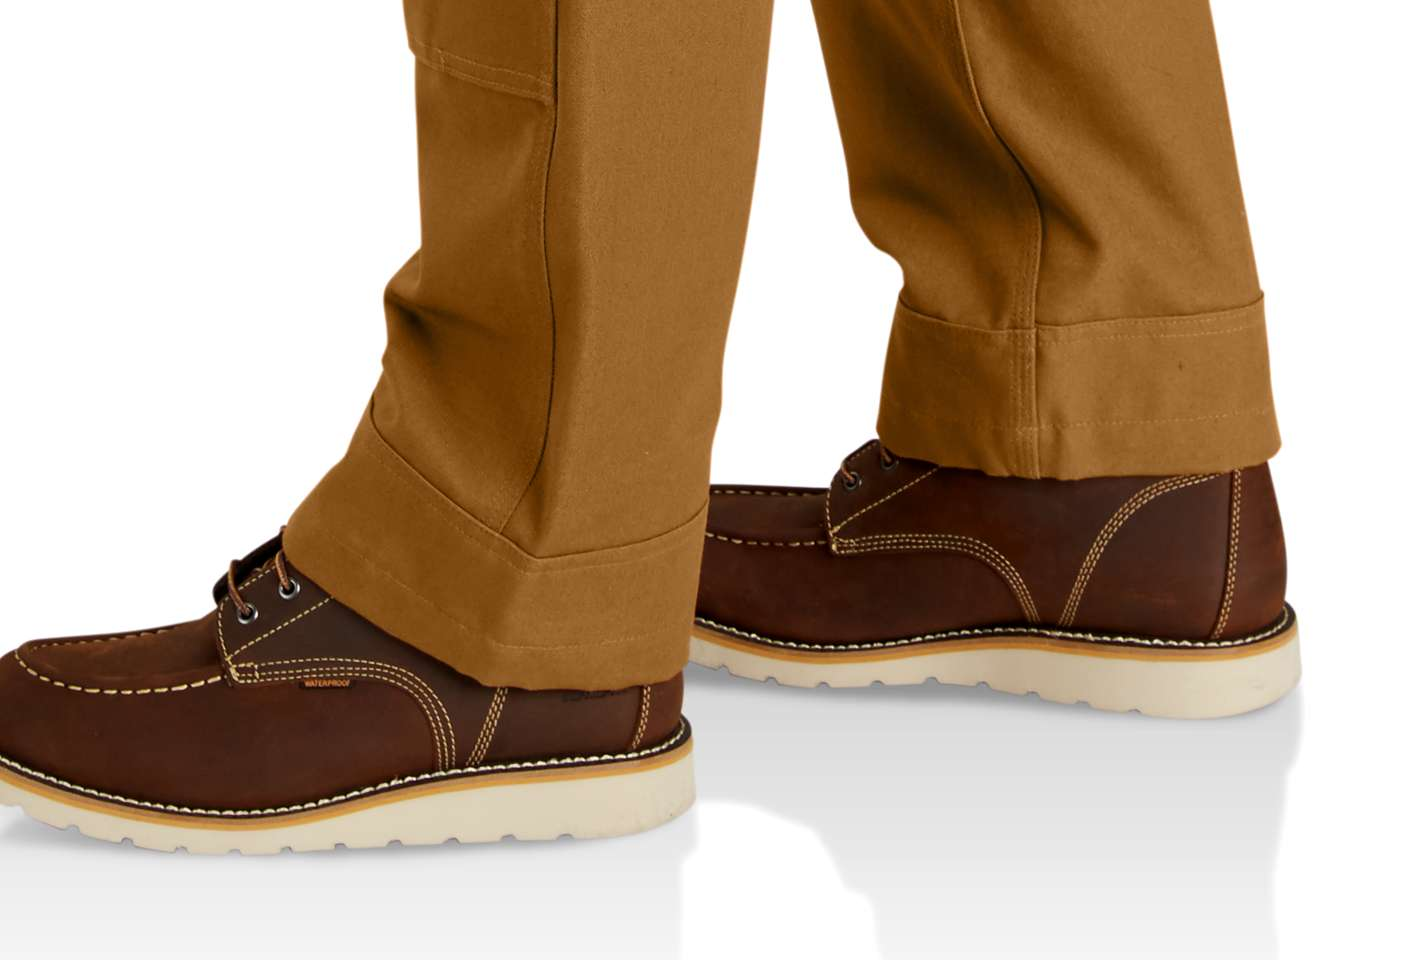 Kick panels around cuffs for extra durability